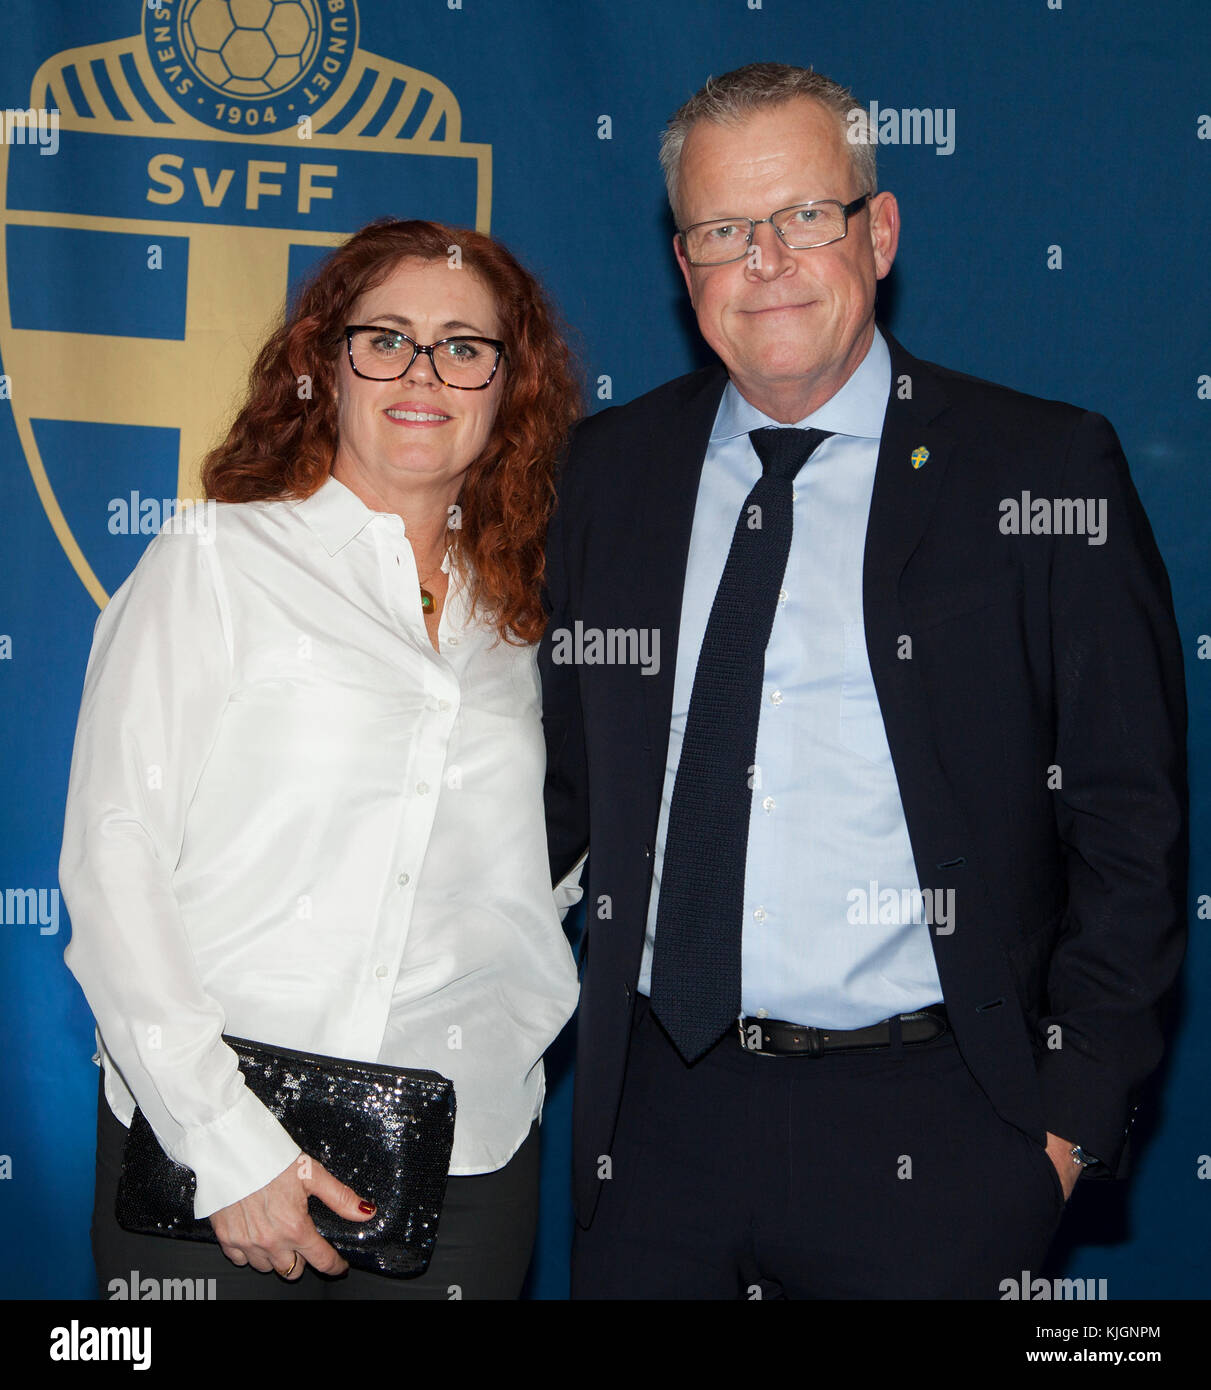 JANNE ANDERSSON Coach for the Swedish National team in football 2018 with wife  Ulrika at annual Football gala in - Stock Image